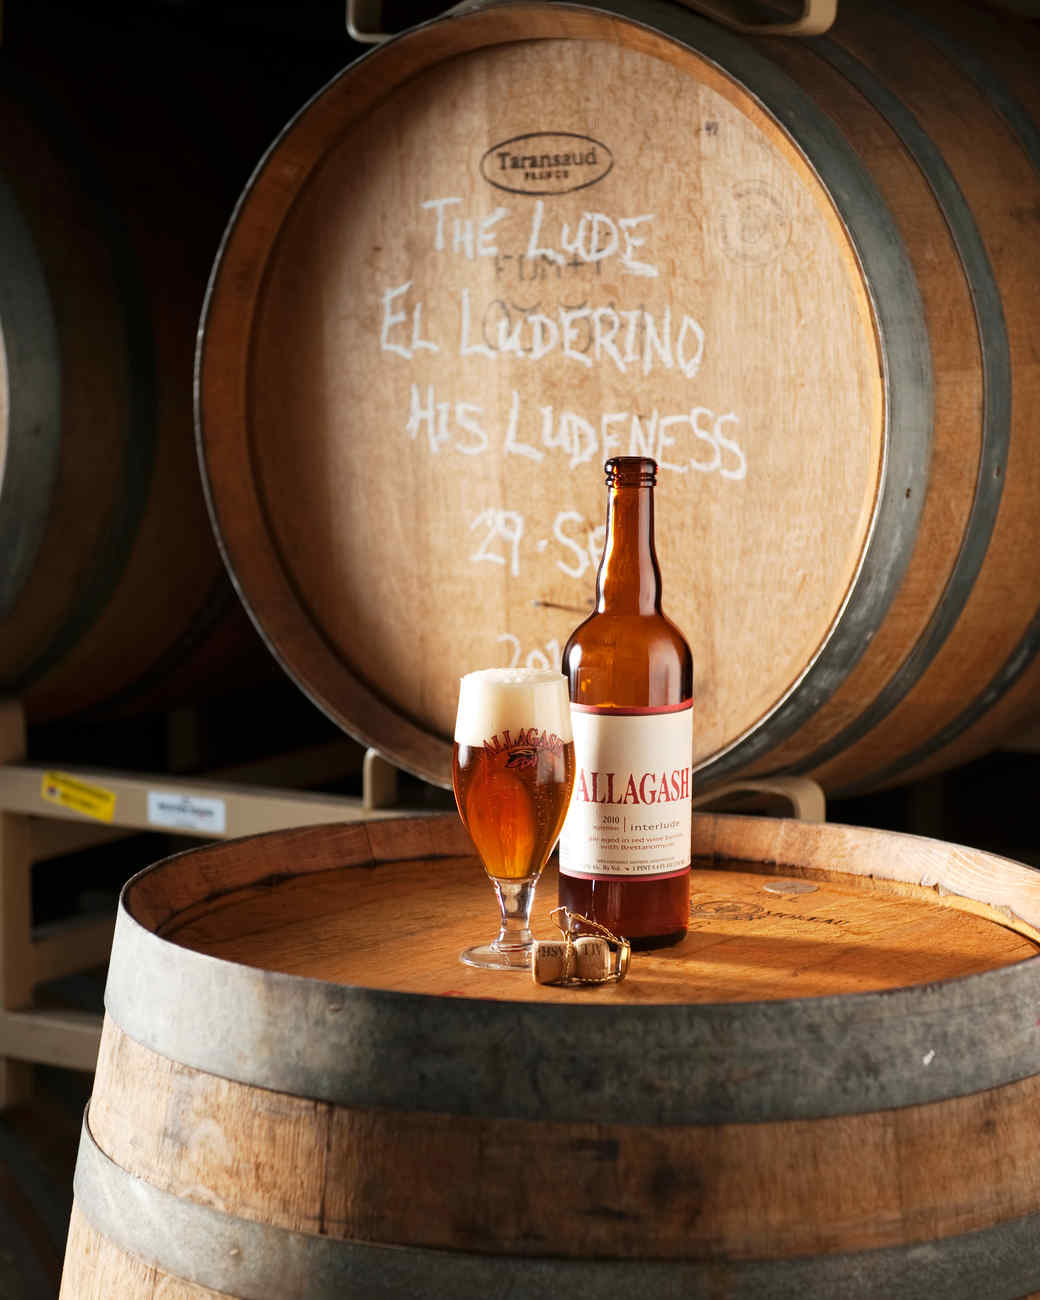 sour-beer-allagash-barrel-1014.jpg